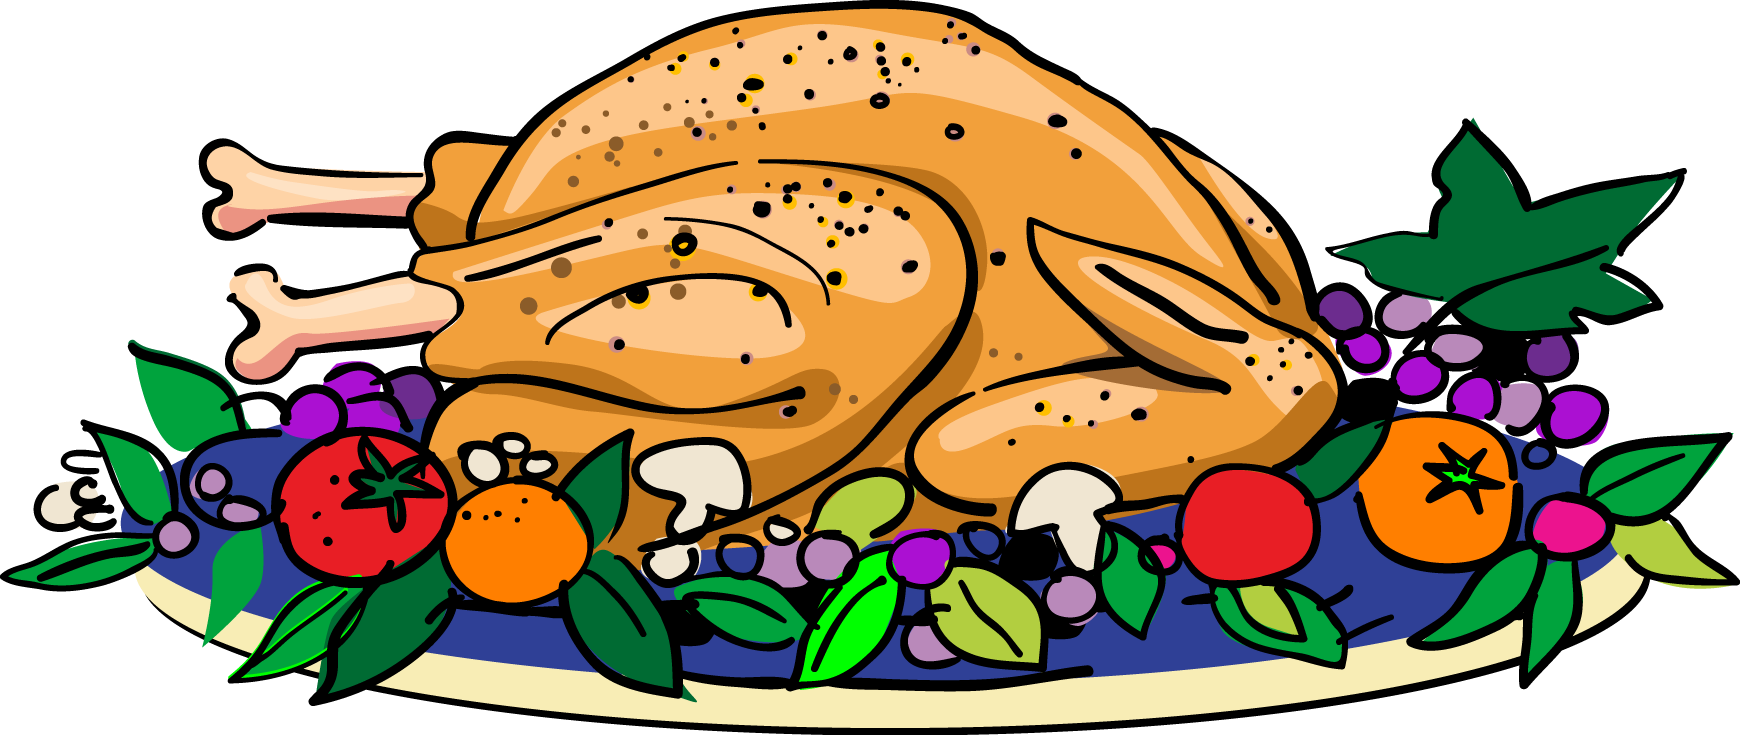 First thanksgiving clipart picture library Thanksgiving Dinner Clip Art & Thanksgiving Dinner Clip Art Clip ... picture library